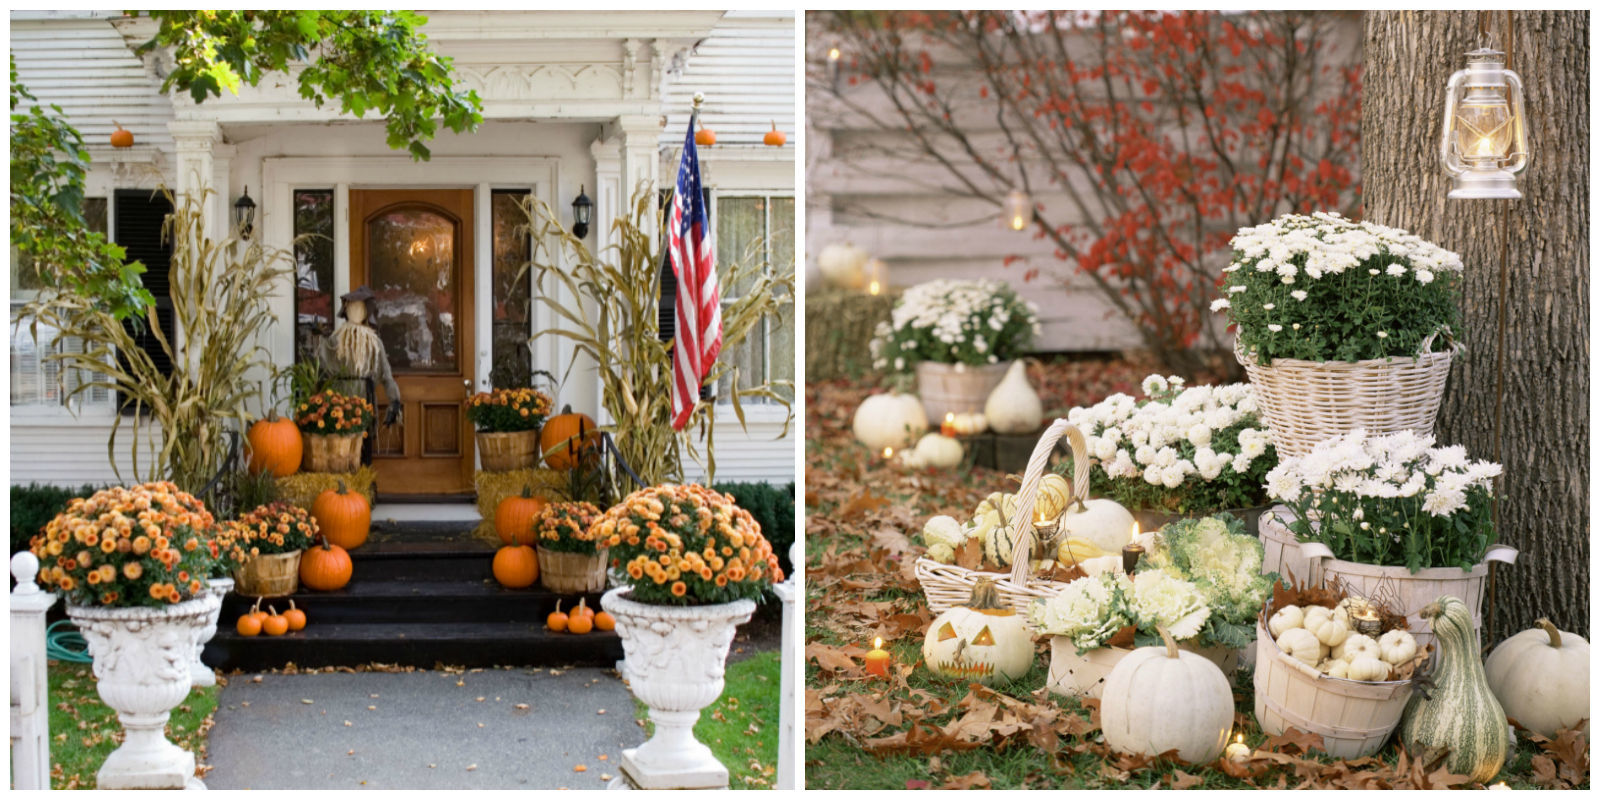 25 Outdoor Halloween Decorations - Porch Decorating Ideas for ...